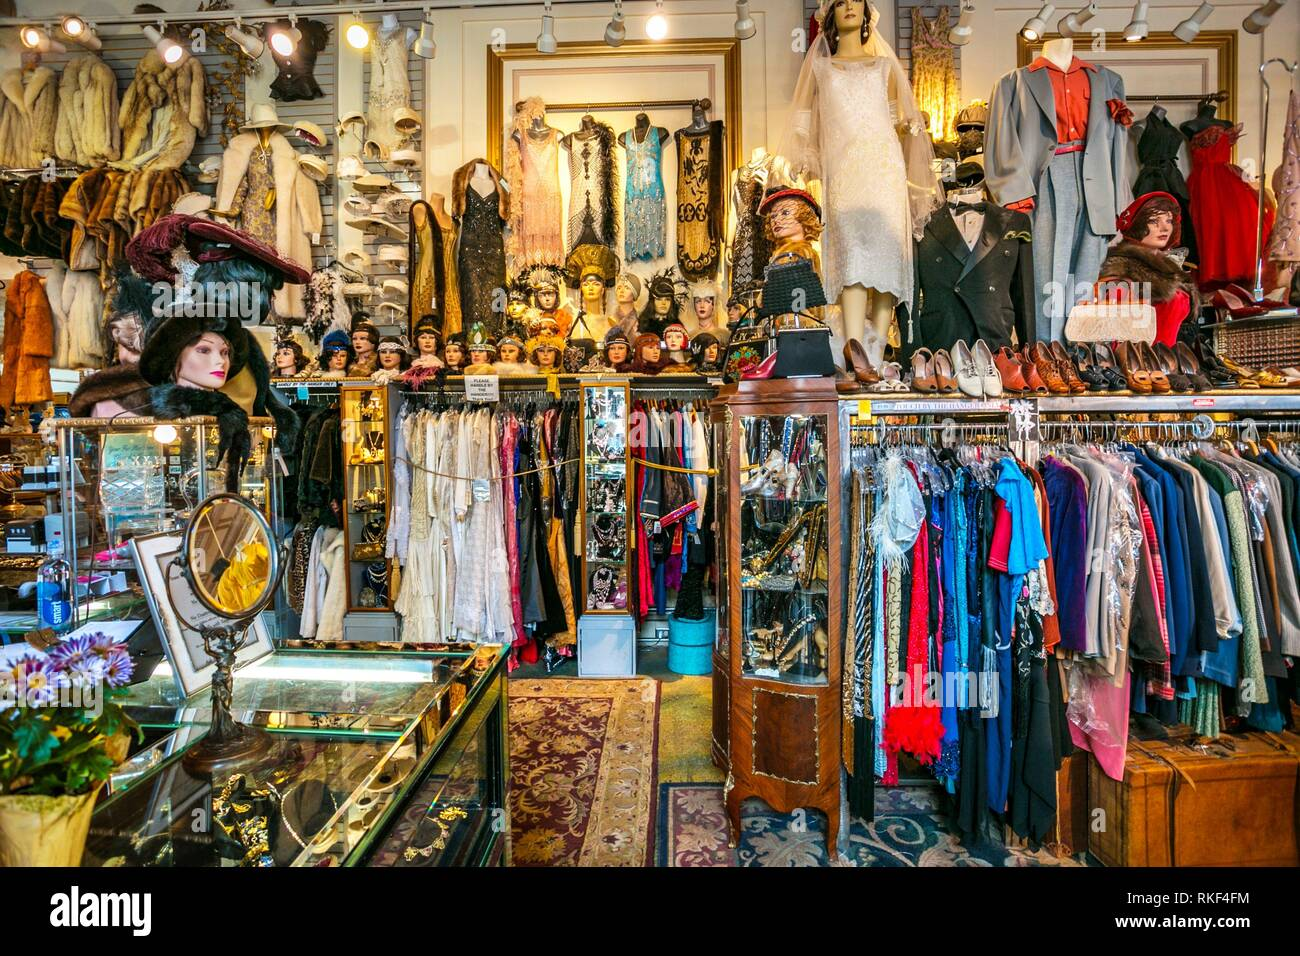 Decades of fashion shop. Haight-Ashbury district. The neighborhood is known for being the origin of hippie counter culture. San Francisco. - Stock Image